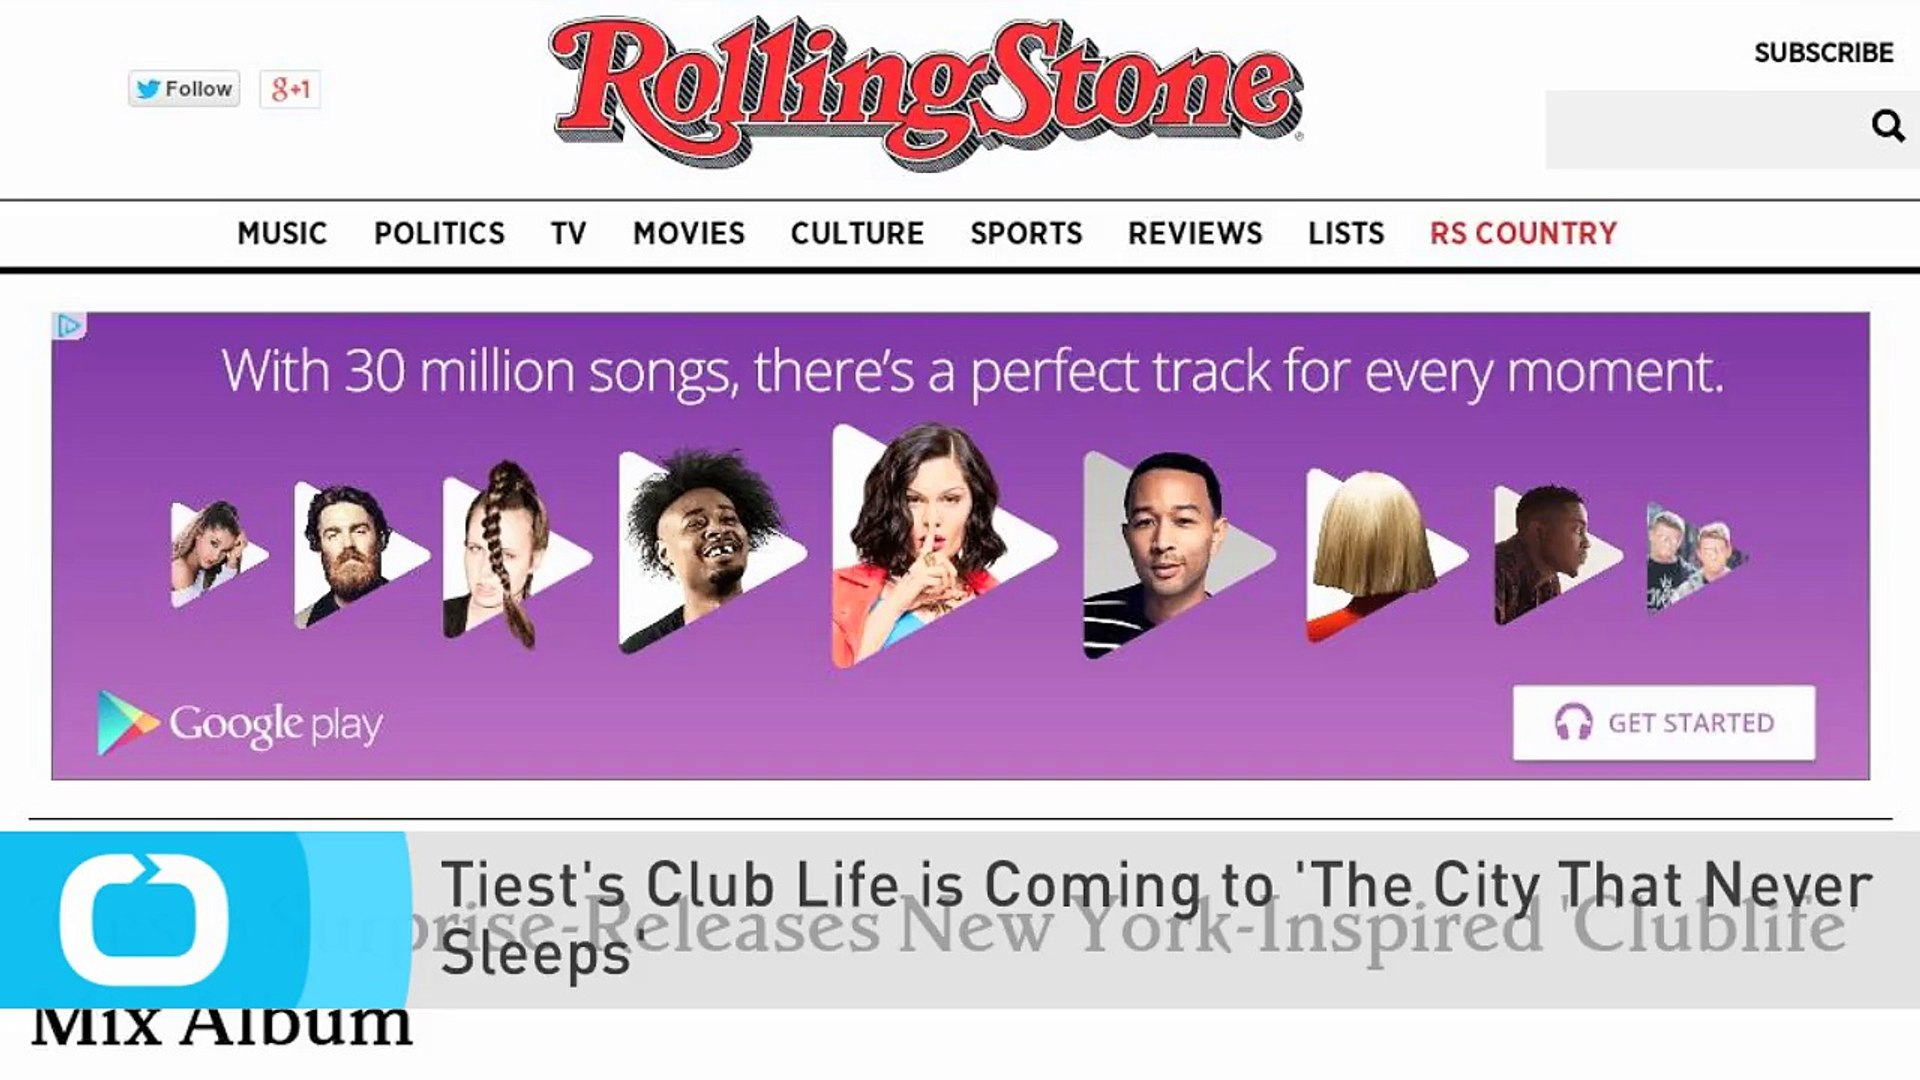 Tiest's Club Life is Coming to 'The City That Never Sleeps'